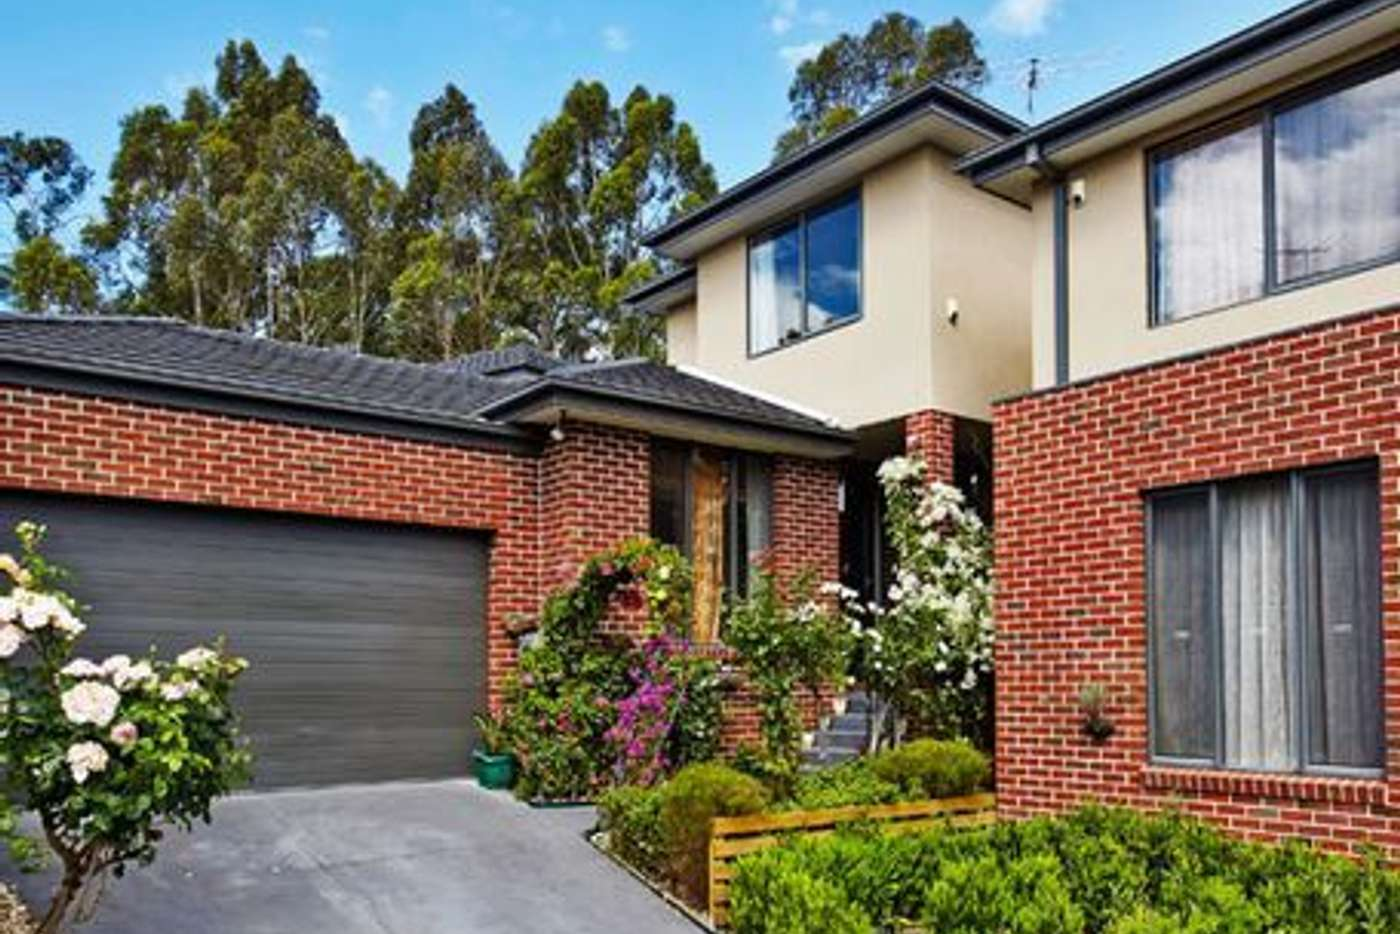 Main view of Homely townhouse listing, 3/46 Gedye Street, Doncaster East VIC 3109